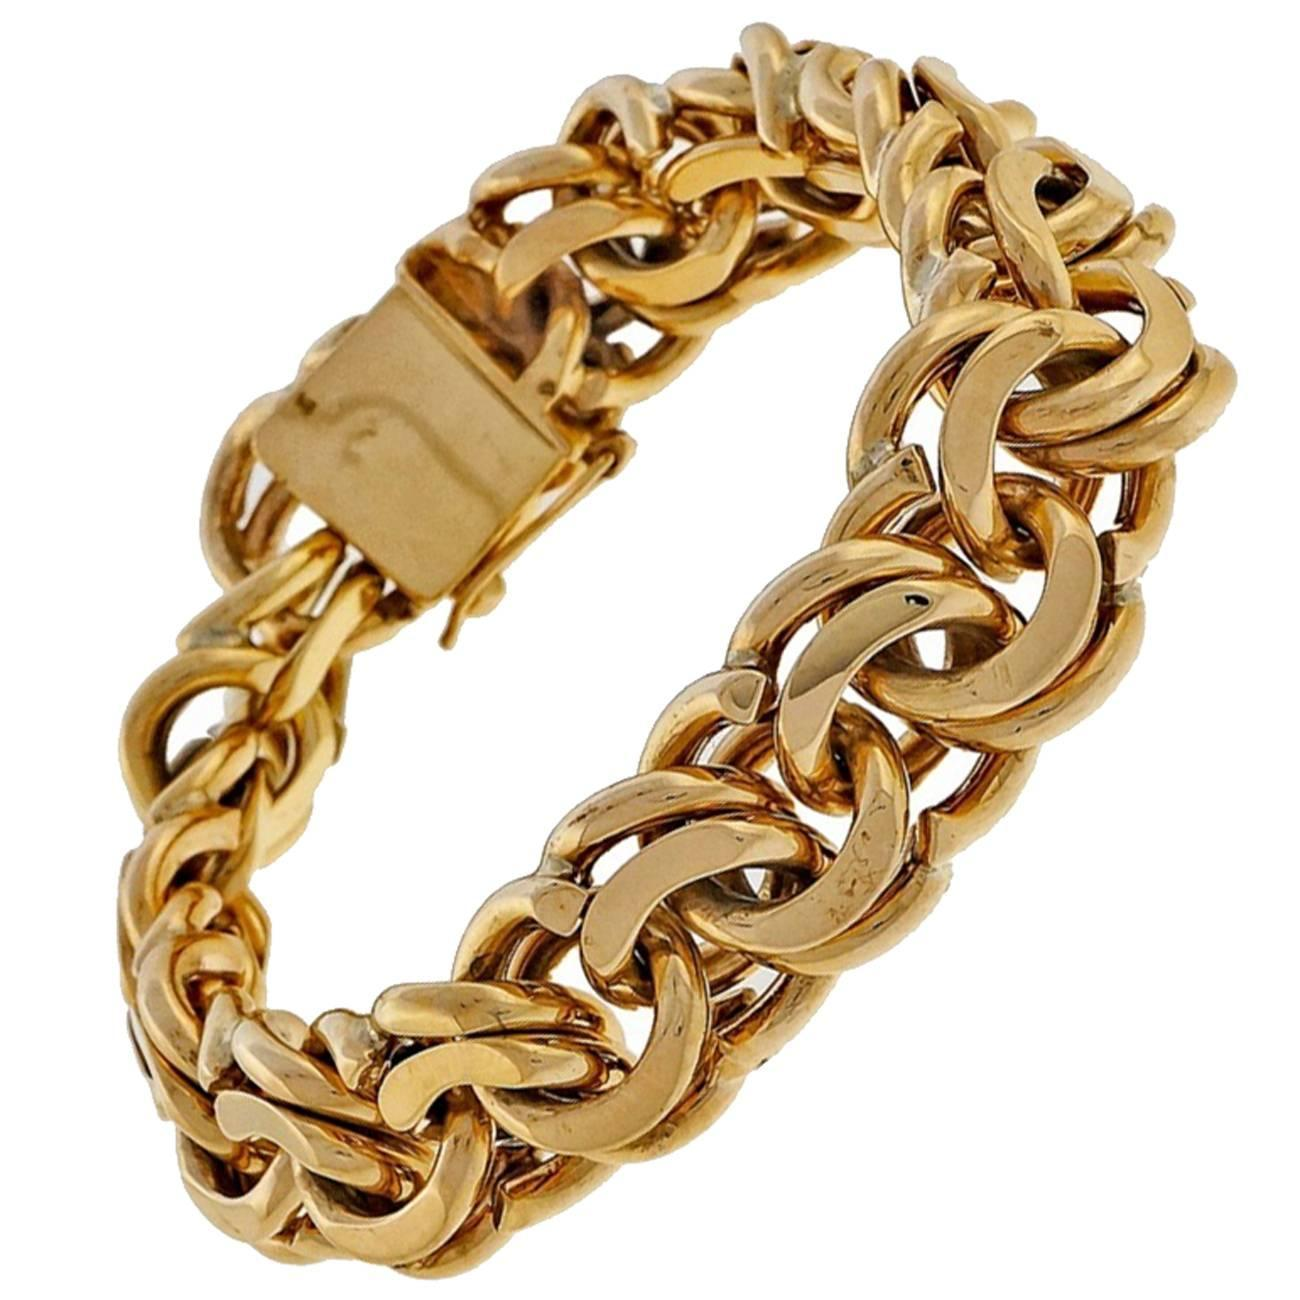 Gold Charms For Charm Bracelet: Heavy Solid Gold Double Spiral Link Charm Bracelet At 1stdibs